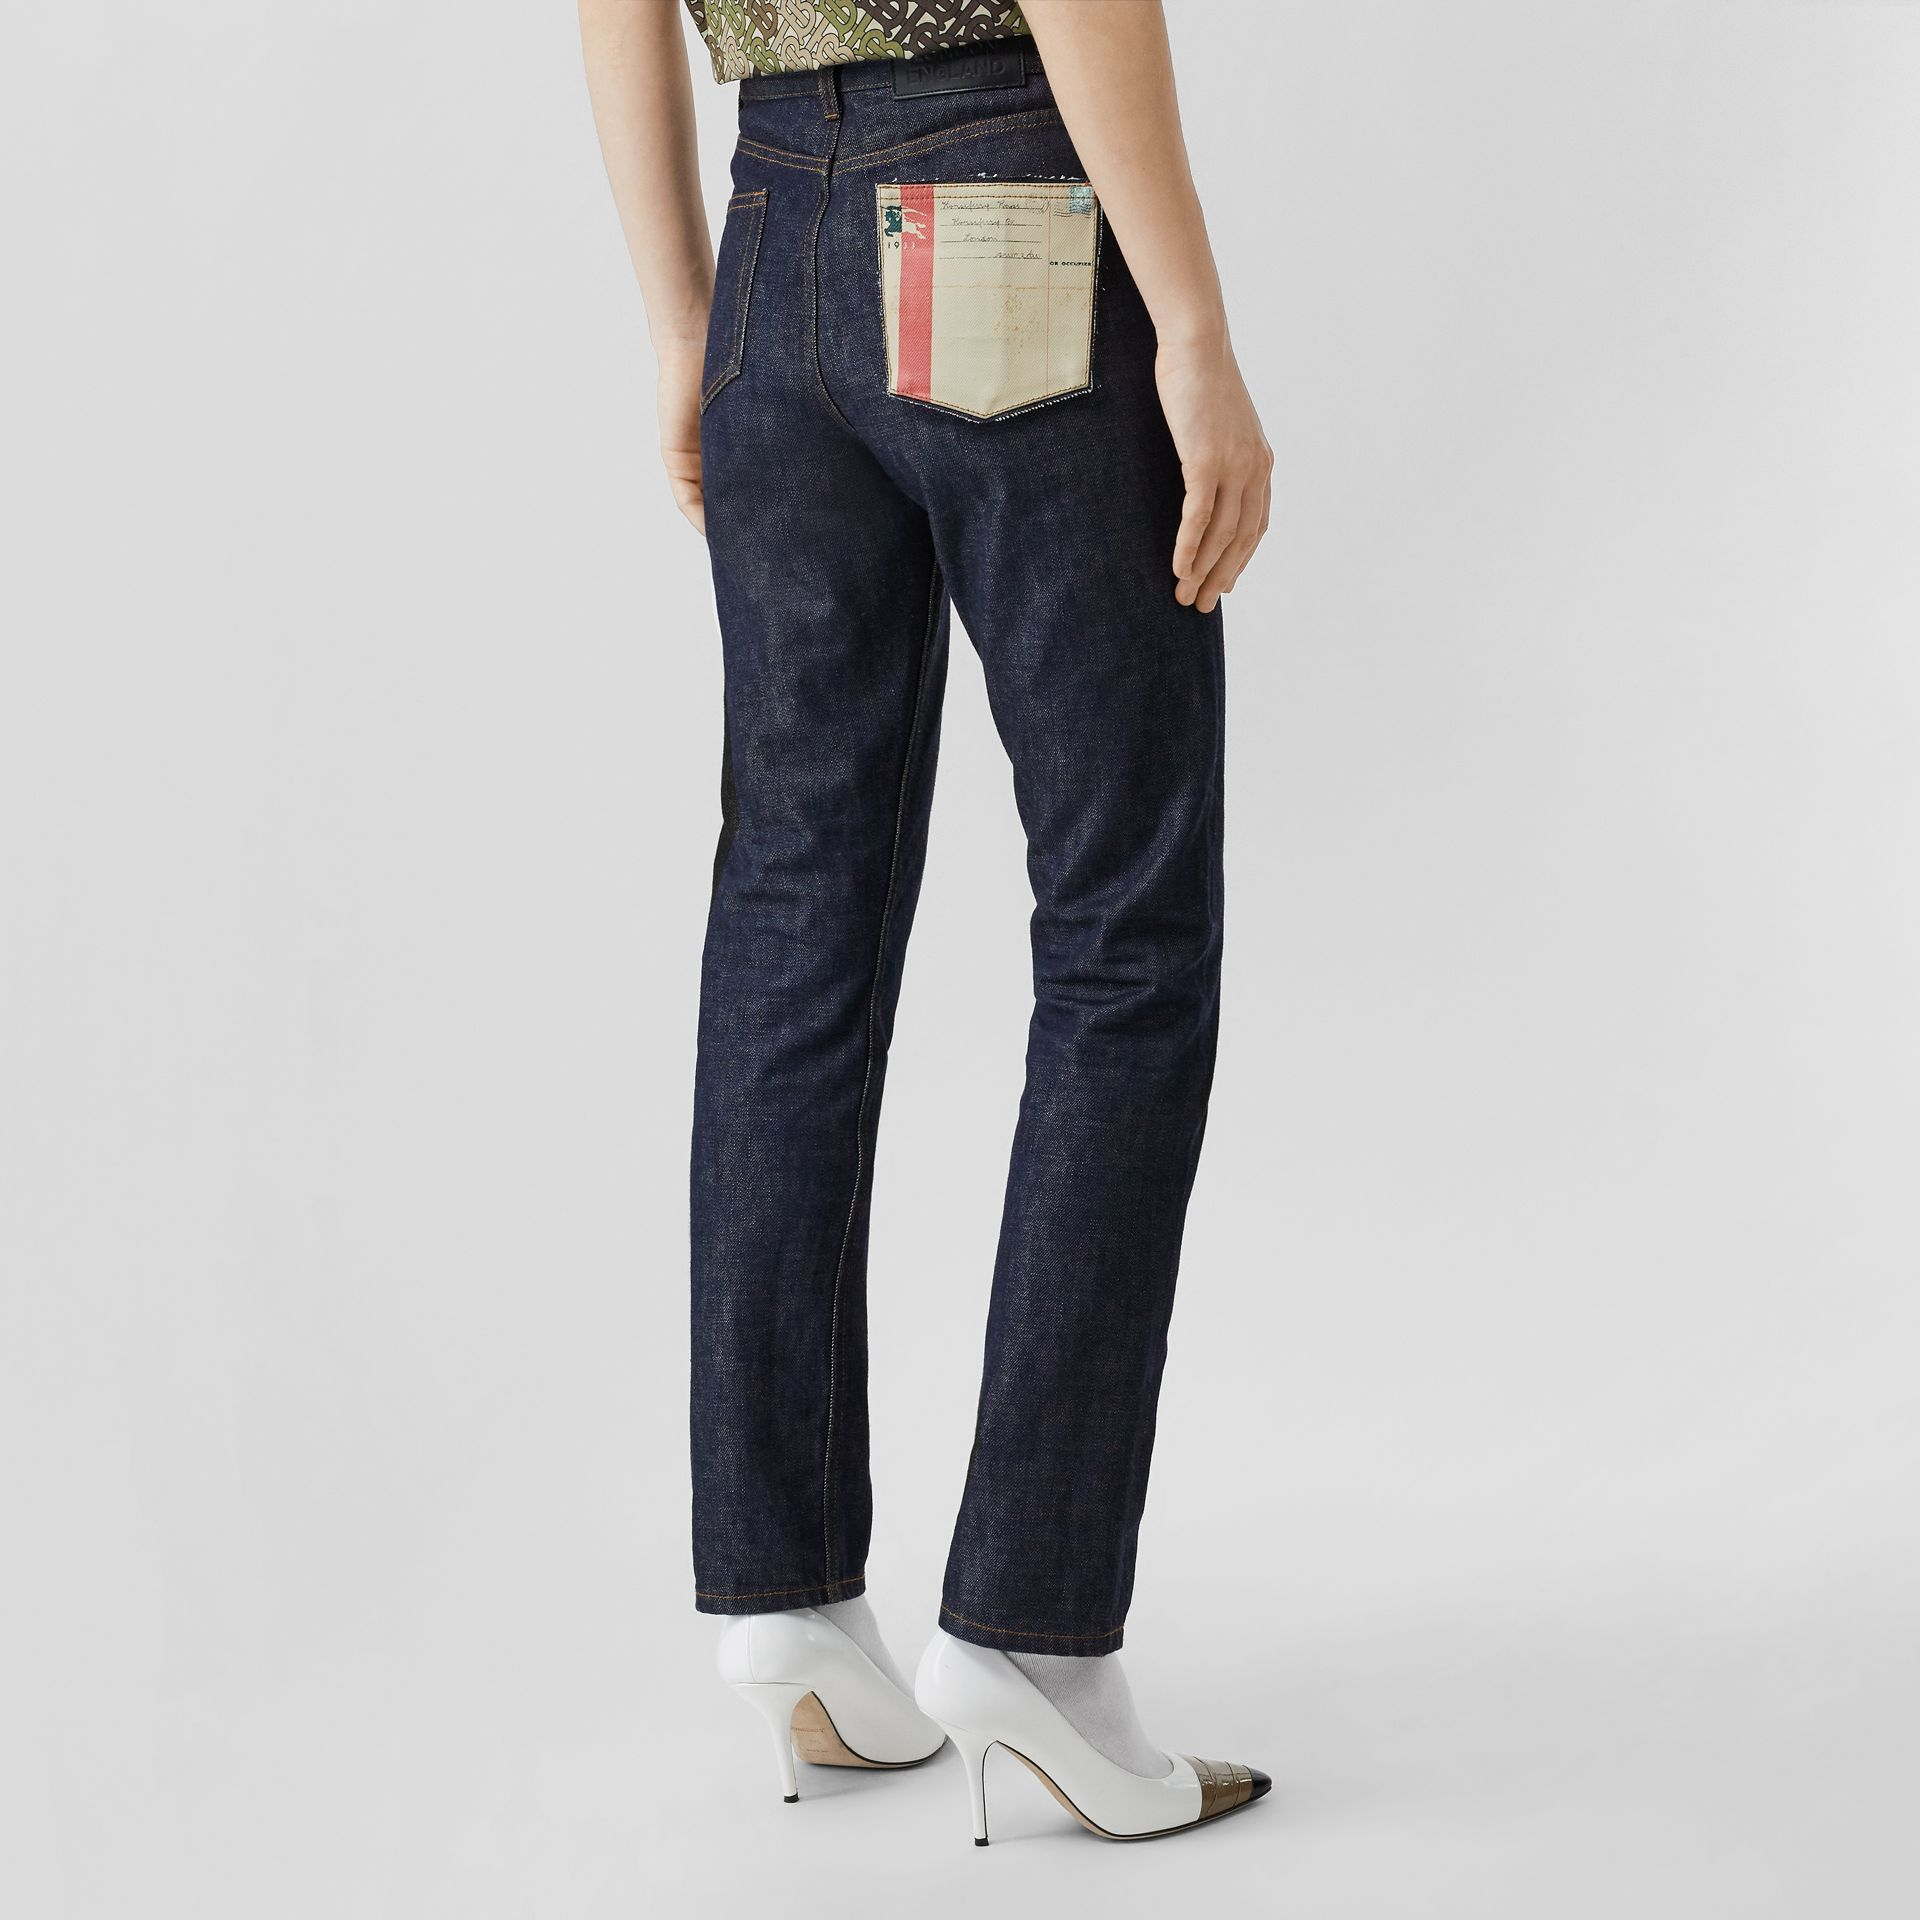 Straight Fit Japanese Selvedge Denim Jeans in Indigo - Women | Burberry - gallery image 2